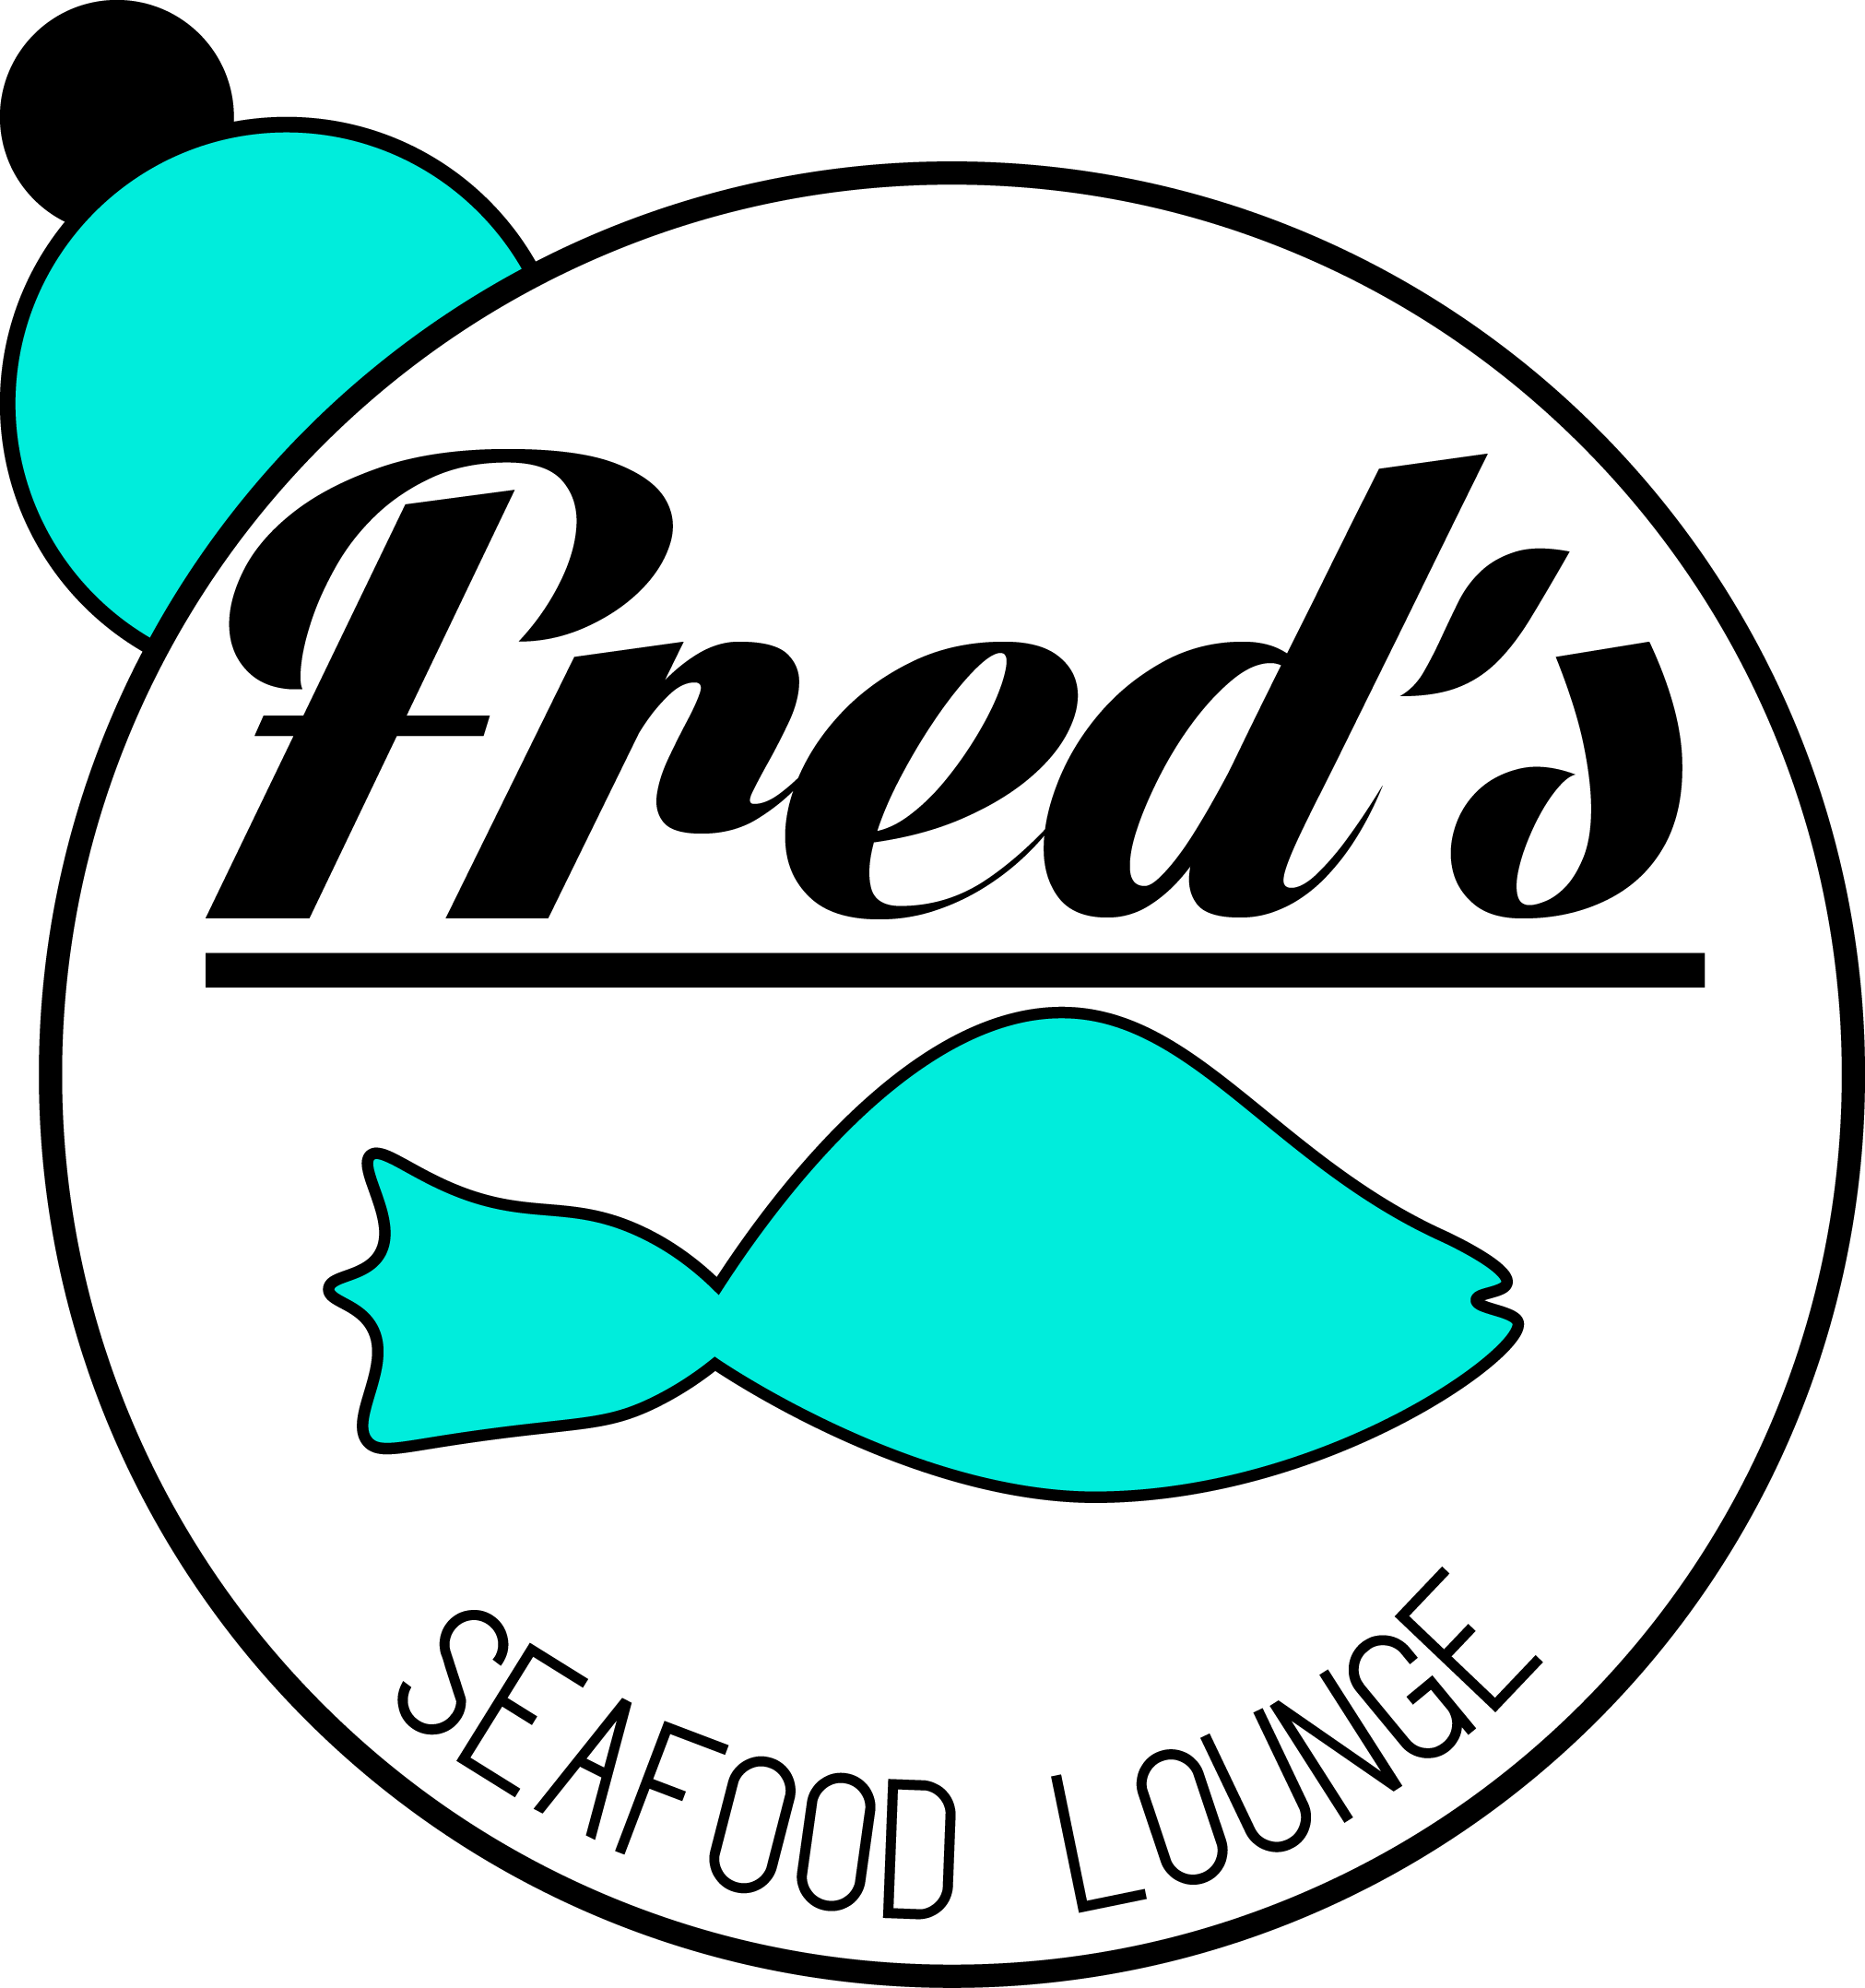 Fred's Fish Logo.png